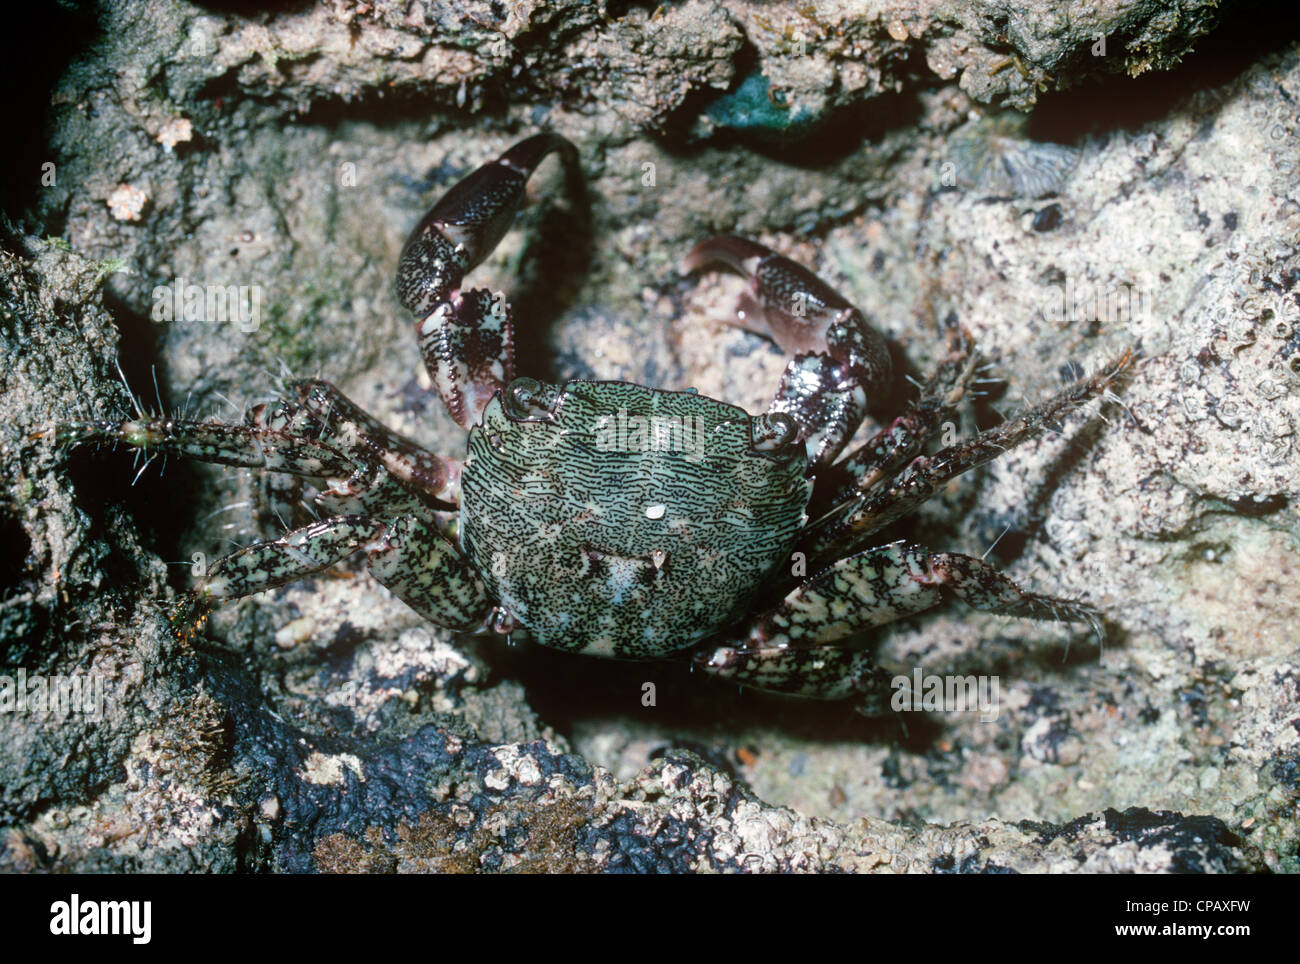 Marbled shore crab, Marbled rock crab (Pachygrapsus marmoratus: Grapsidae) in a rockpool Portugal - Stock Image